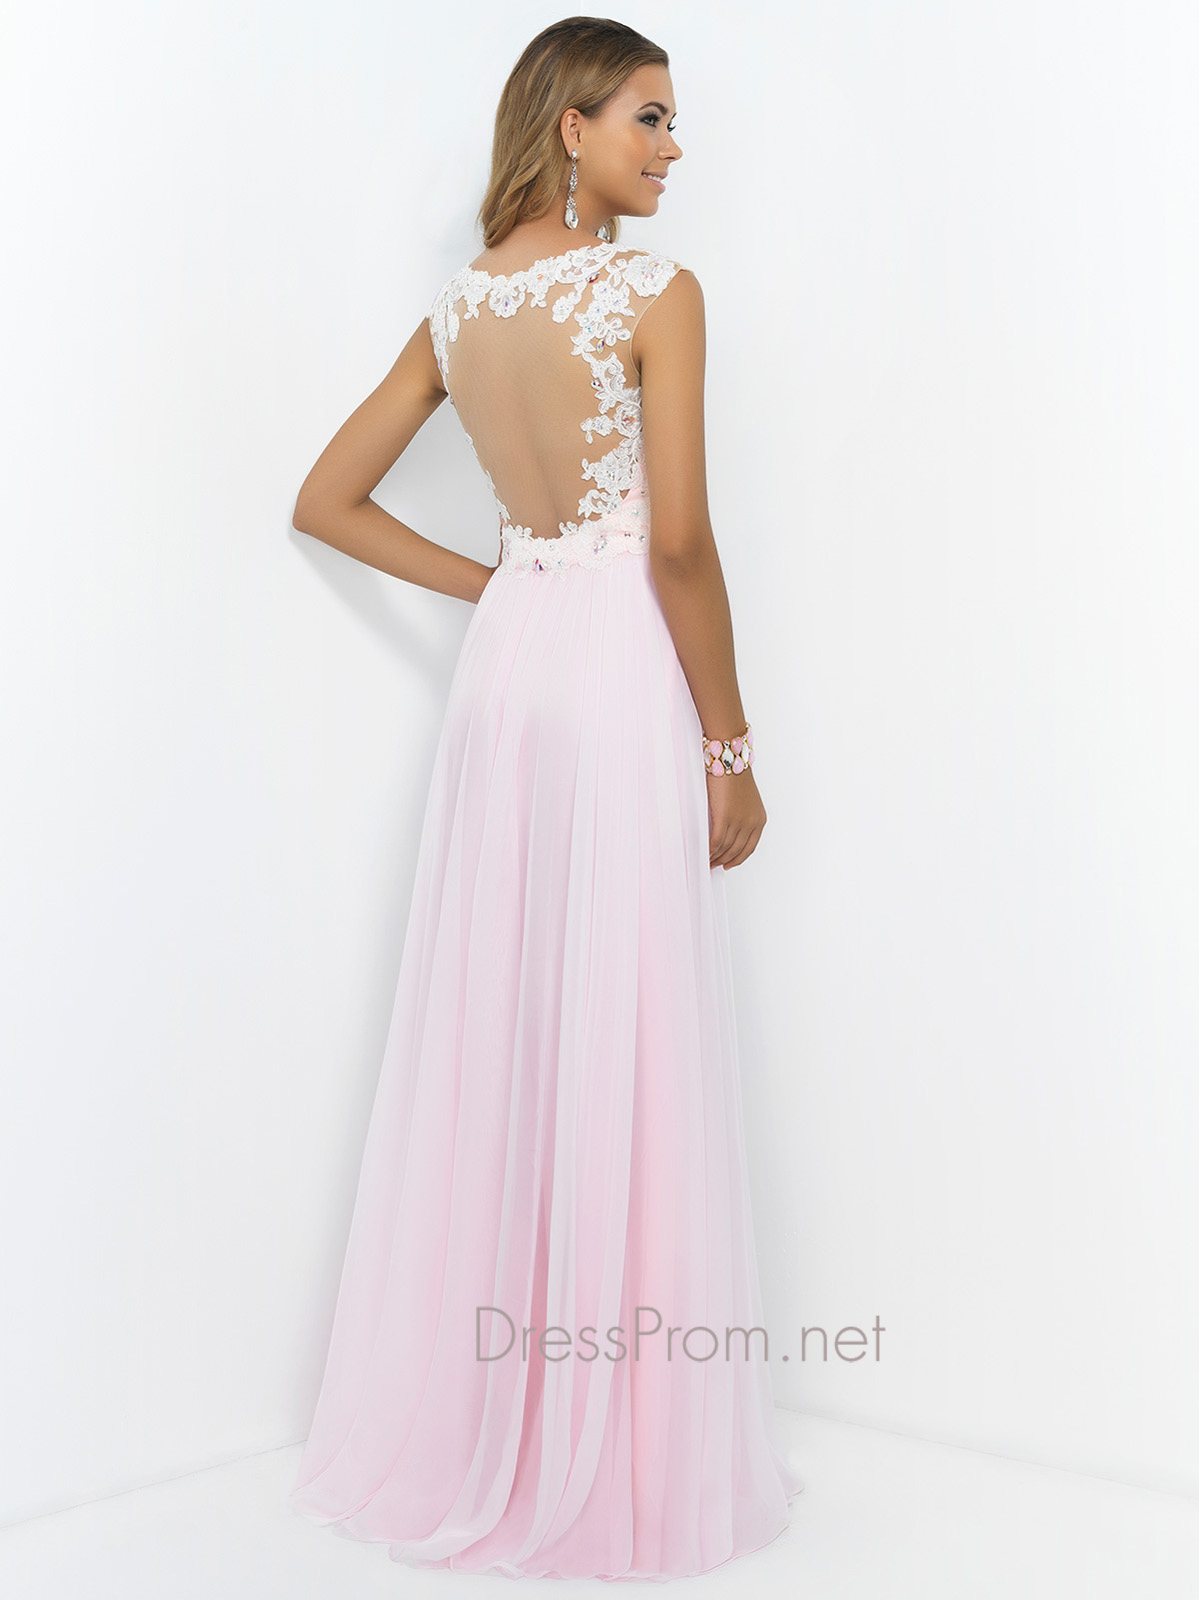 Light Pink Prom Dress Uk